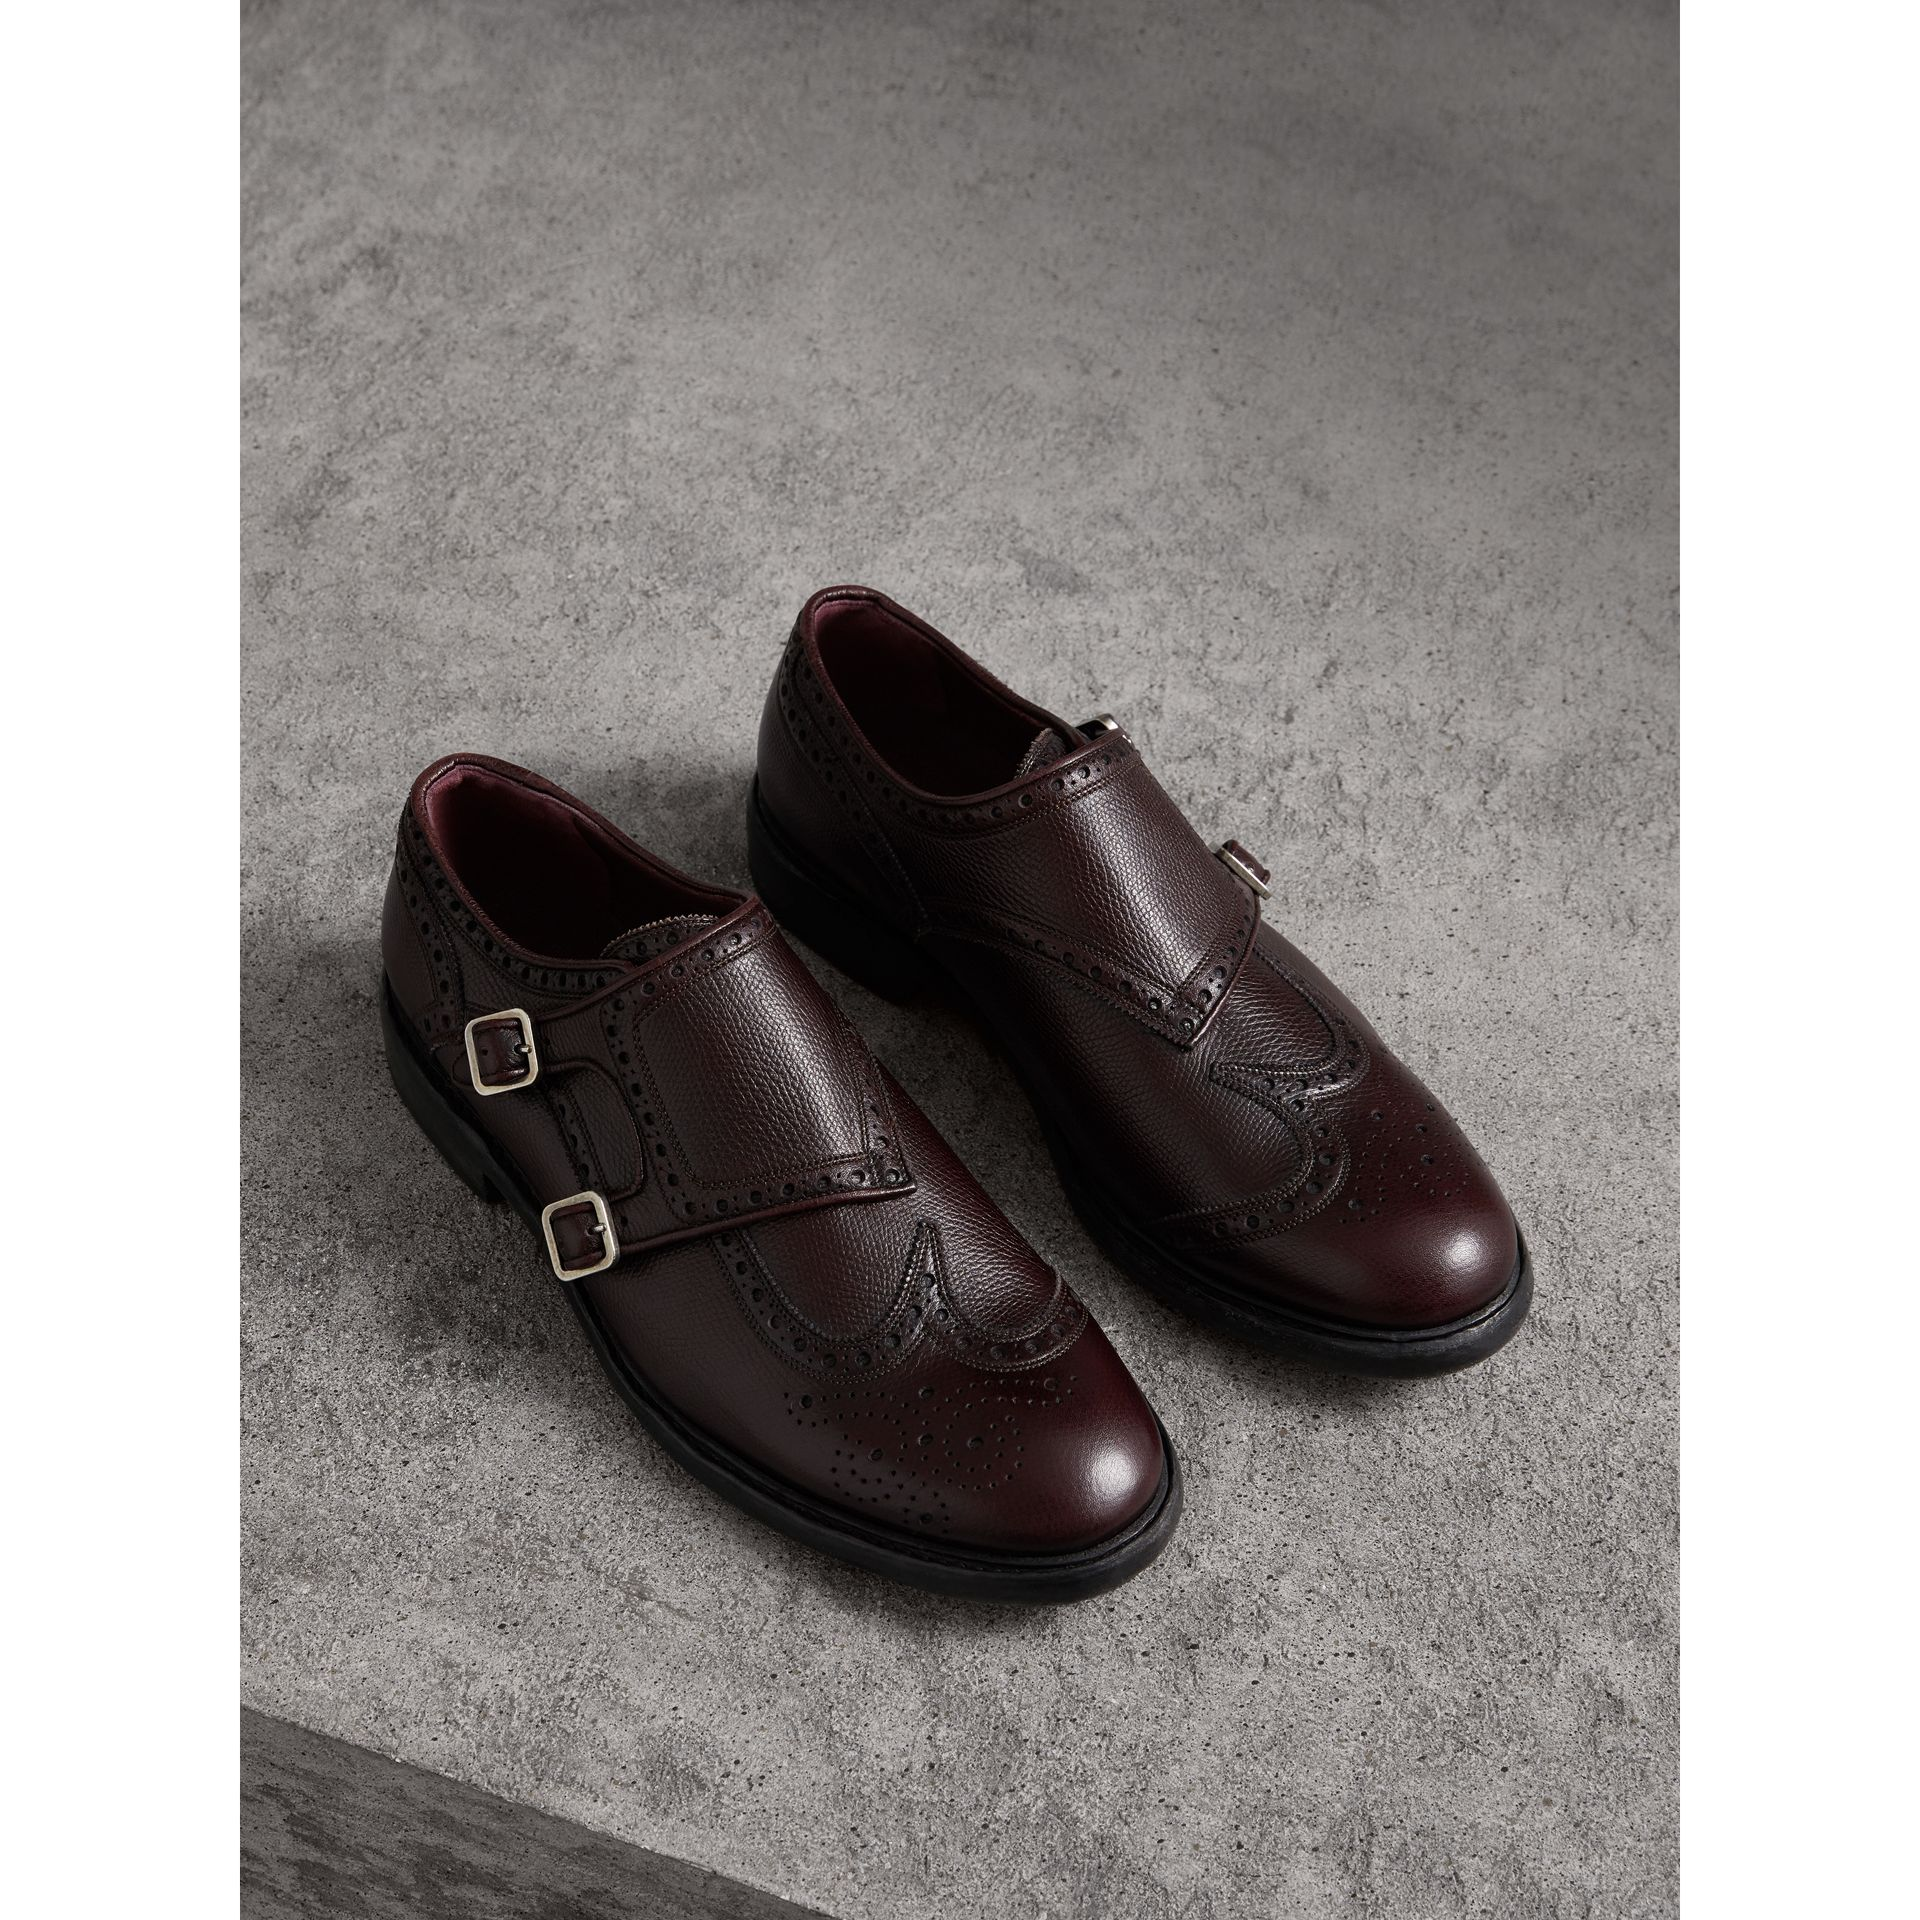 Burberry Burgundy Red Brogue Detail Textured Leather Monk Shoes